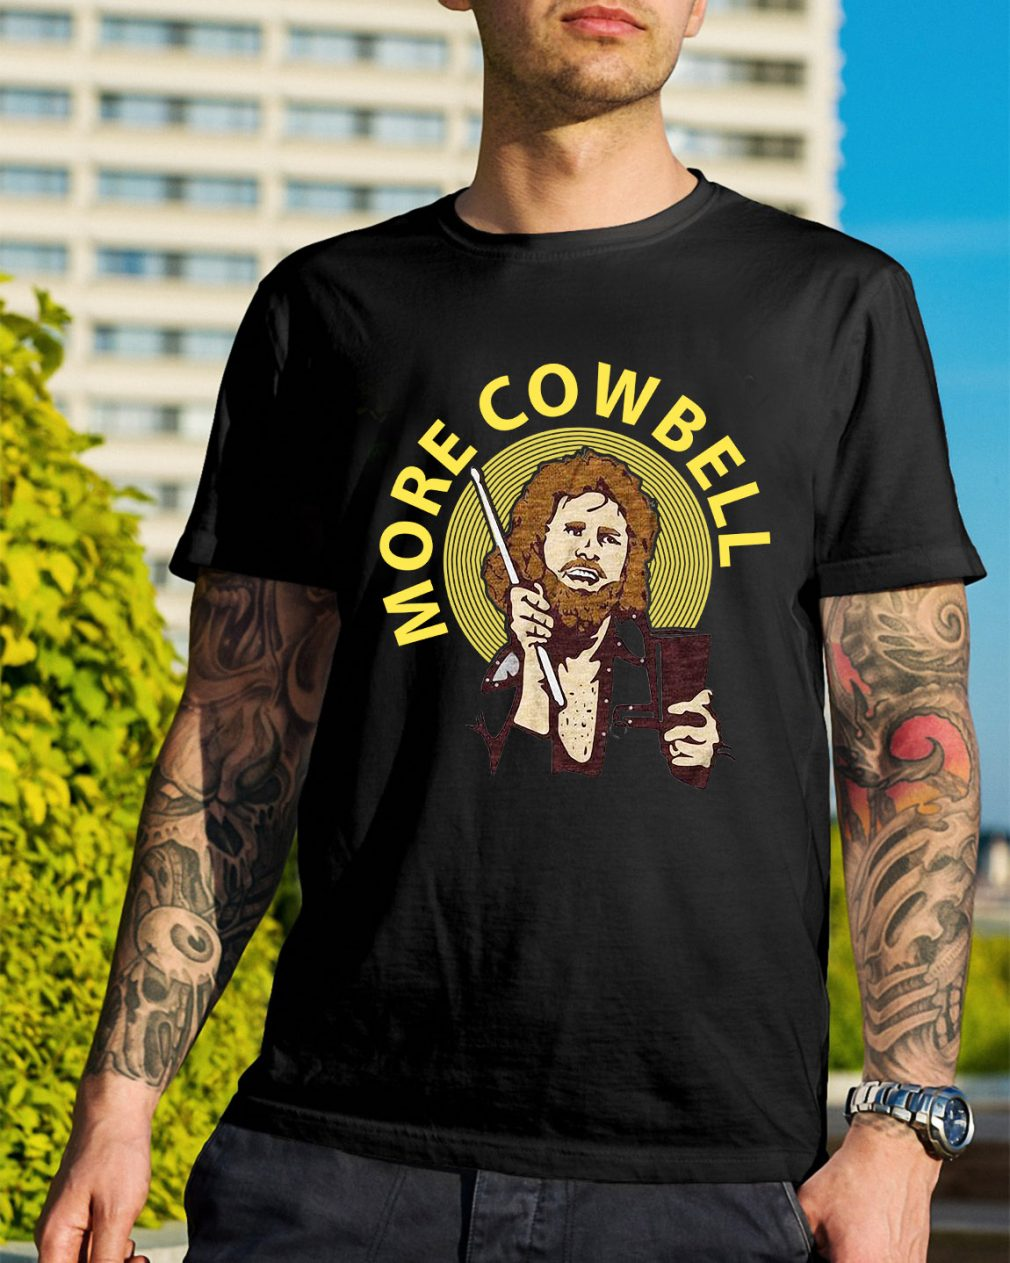 Saturday night live More Cowbell shirt